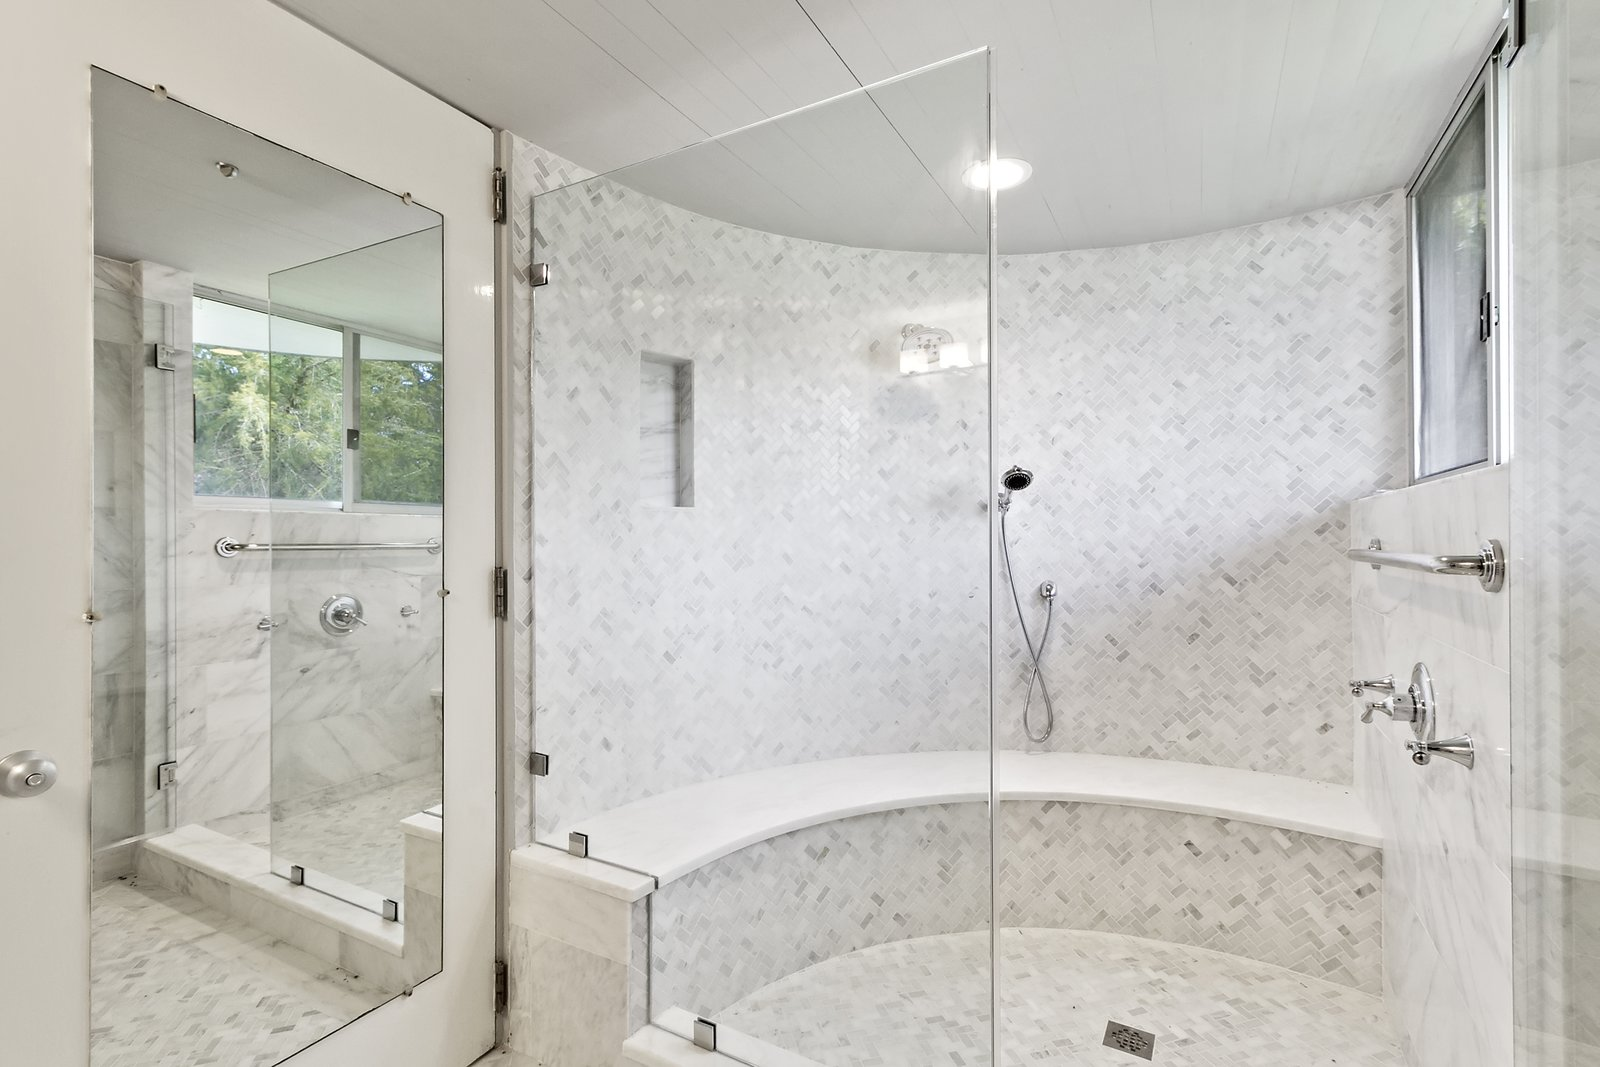 Bath, Mosaic Tile, Enclosed, and Ceiling The large enclosed shower in the master bath.  Best Bath Mosaic Tile Ceiling Photos from Modernist Charles Gwathmey's Personal Hamptons Home Asks $4.85M